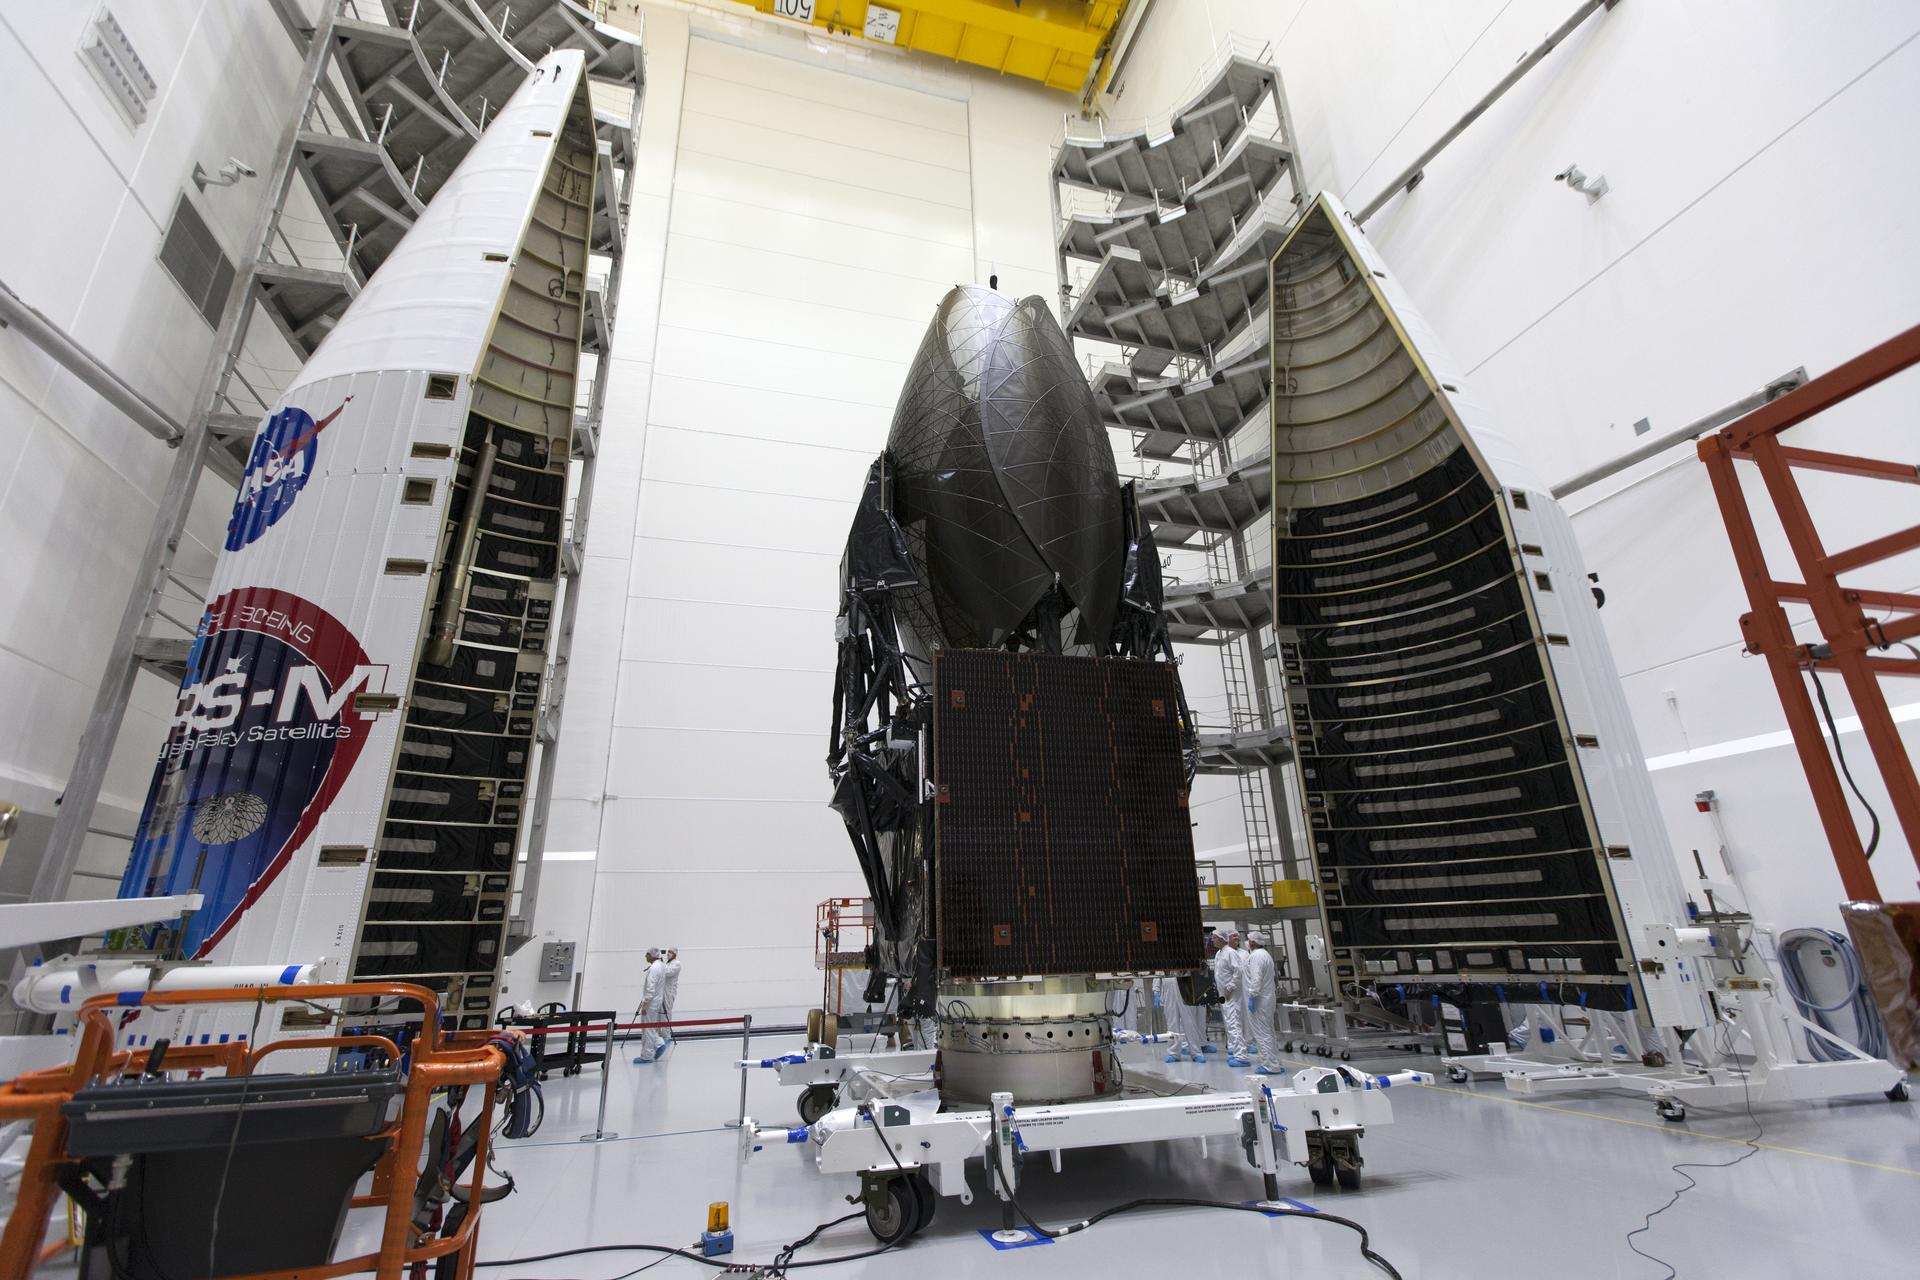 After Recovering from Damages, NASA's Satellite Finally Launches